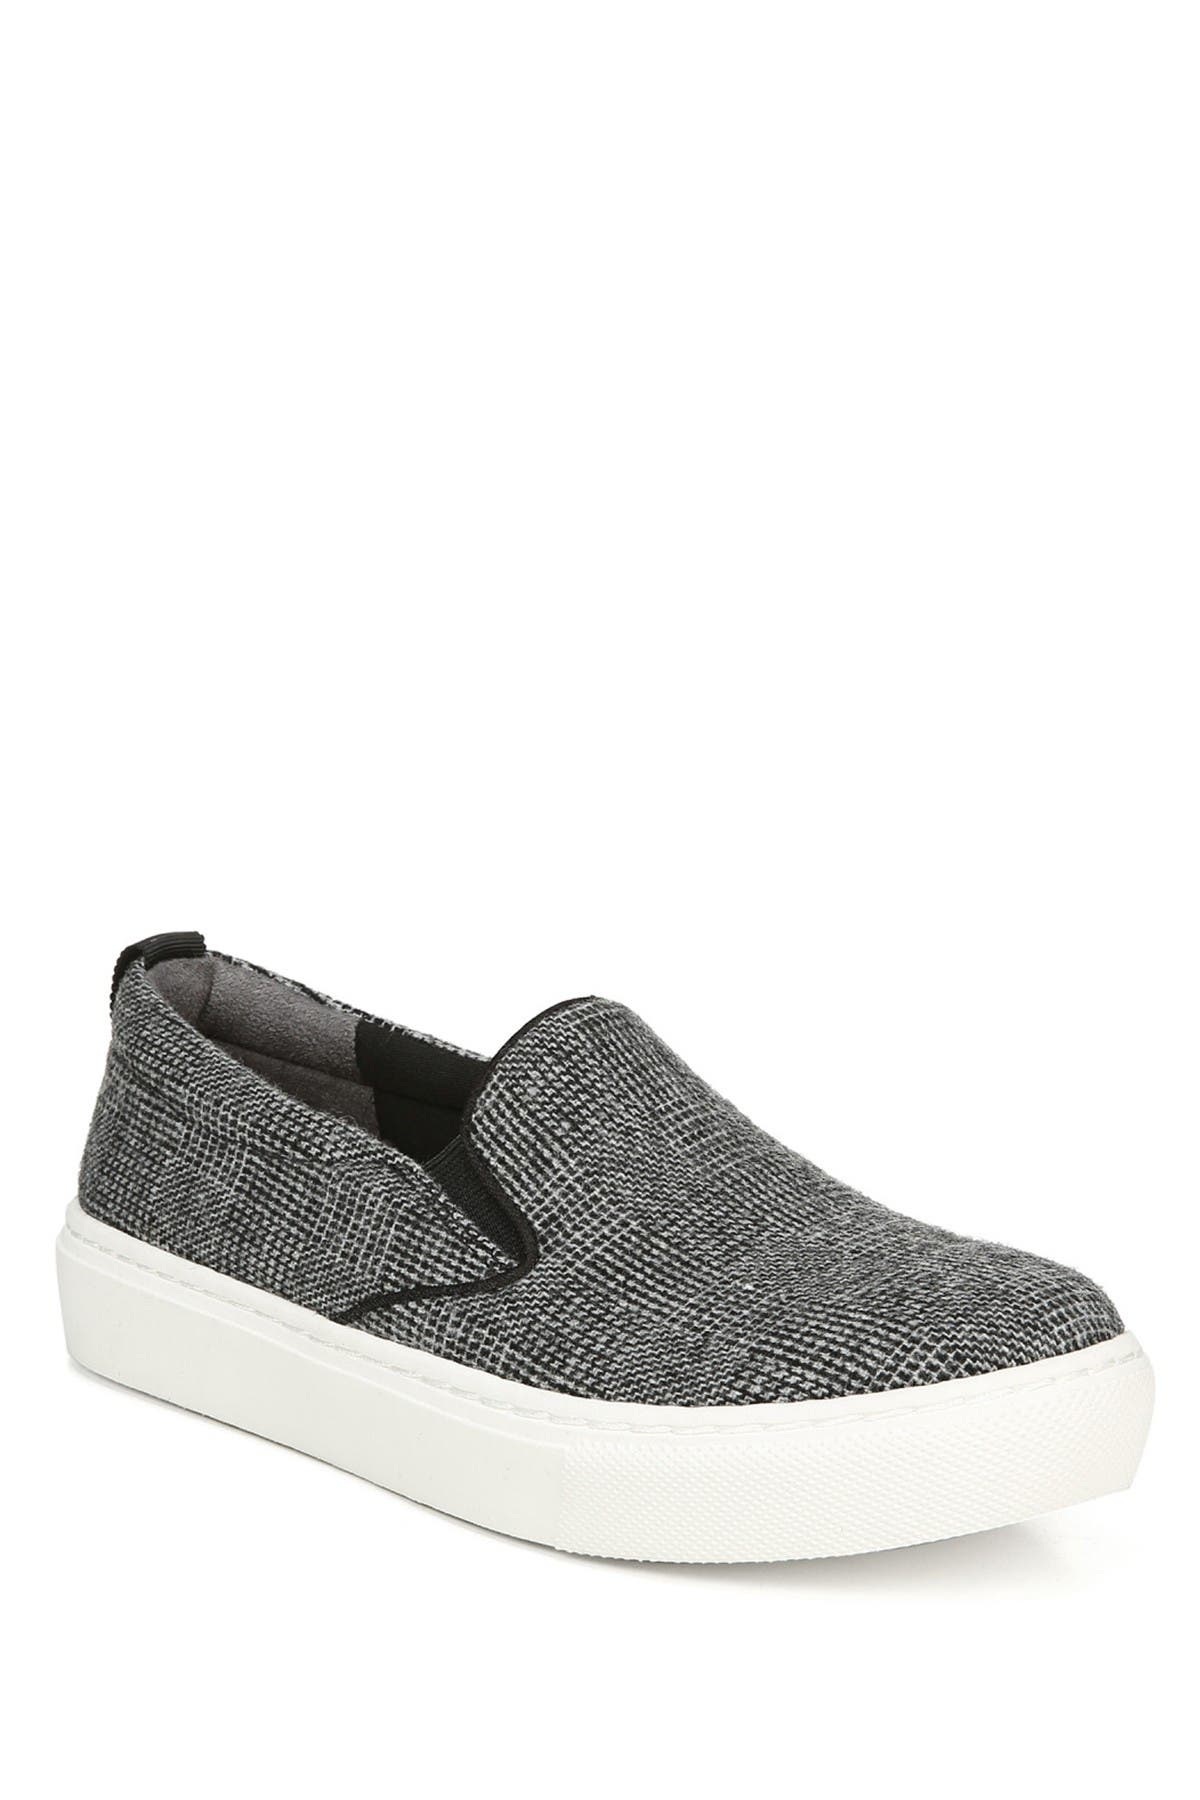 Image of Dr. Scholl's No Bad Days Plaid Slip-On Sneaker